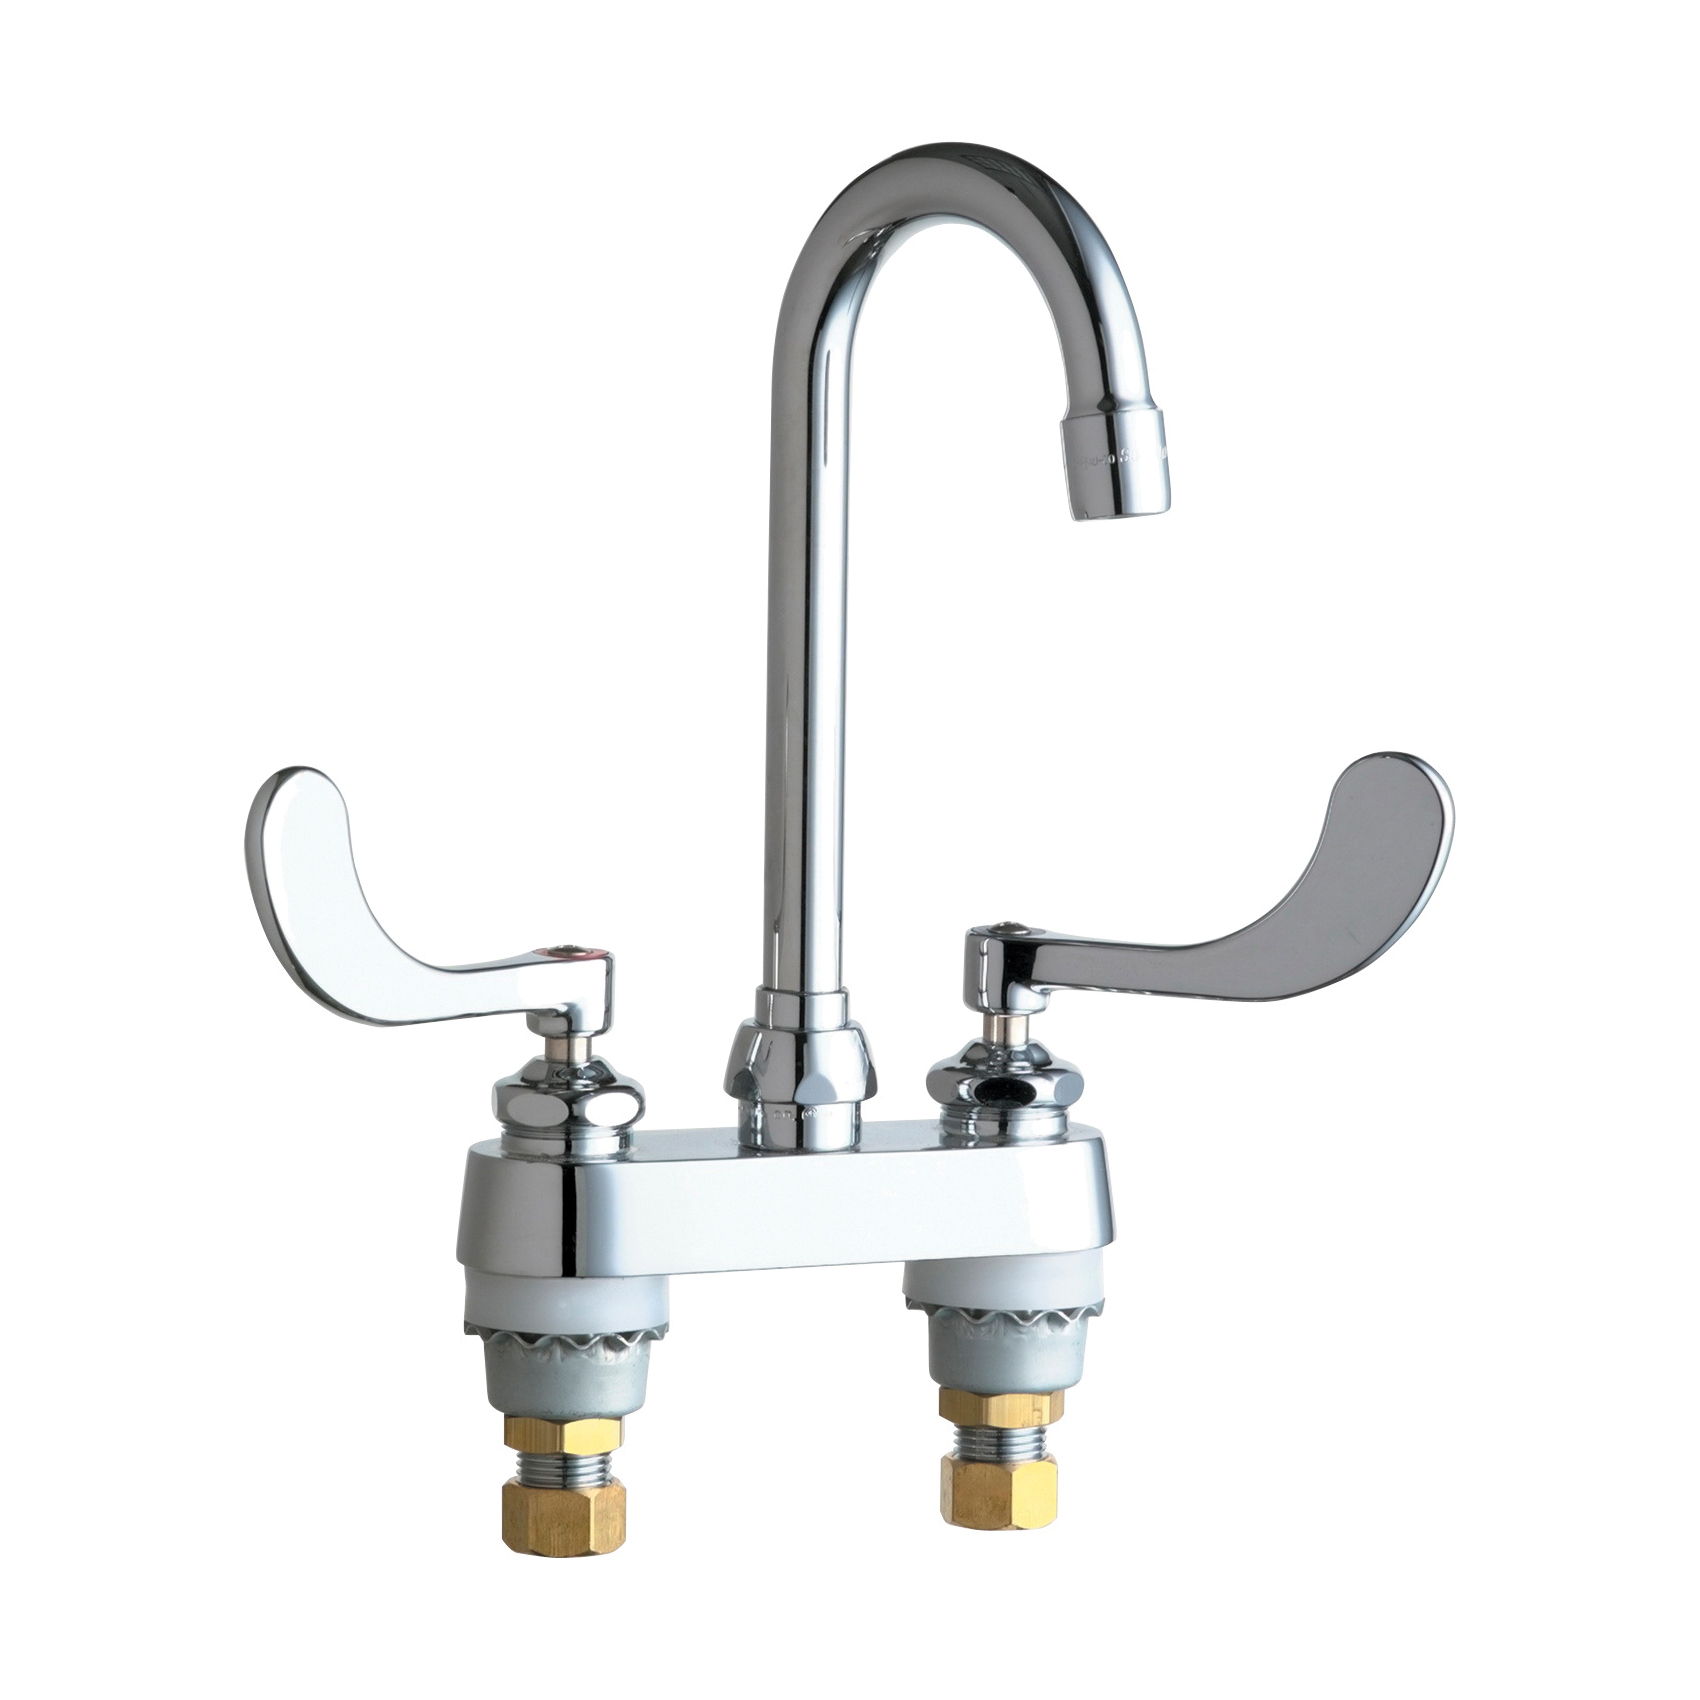 Chicago Faucet® 895-317E35ABCP Lavatory Sink Faucet, Chrome Plated, 2 Handles, 1.5 gpm